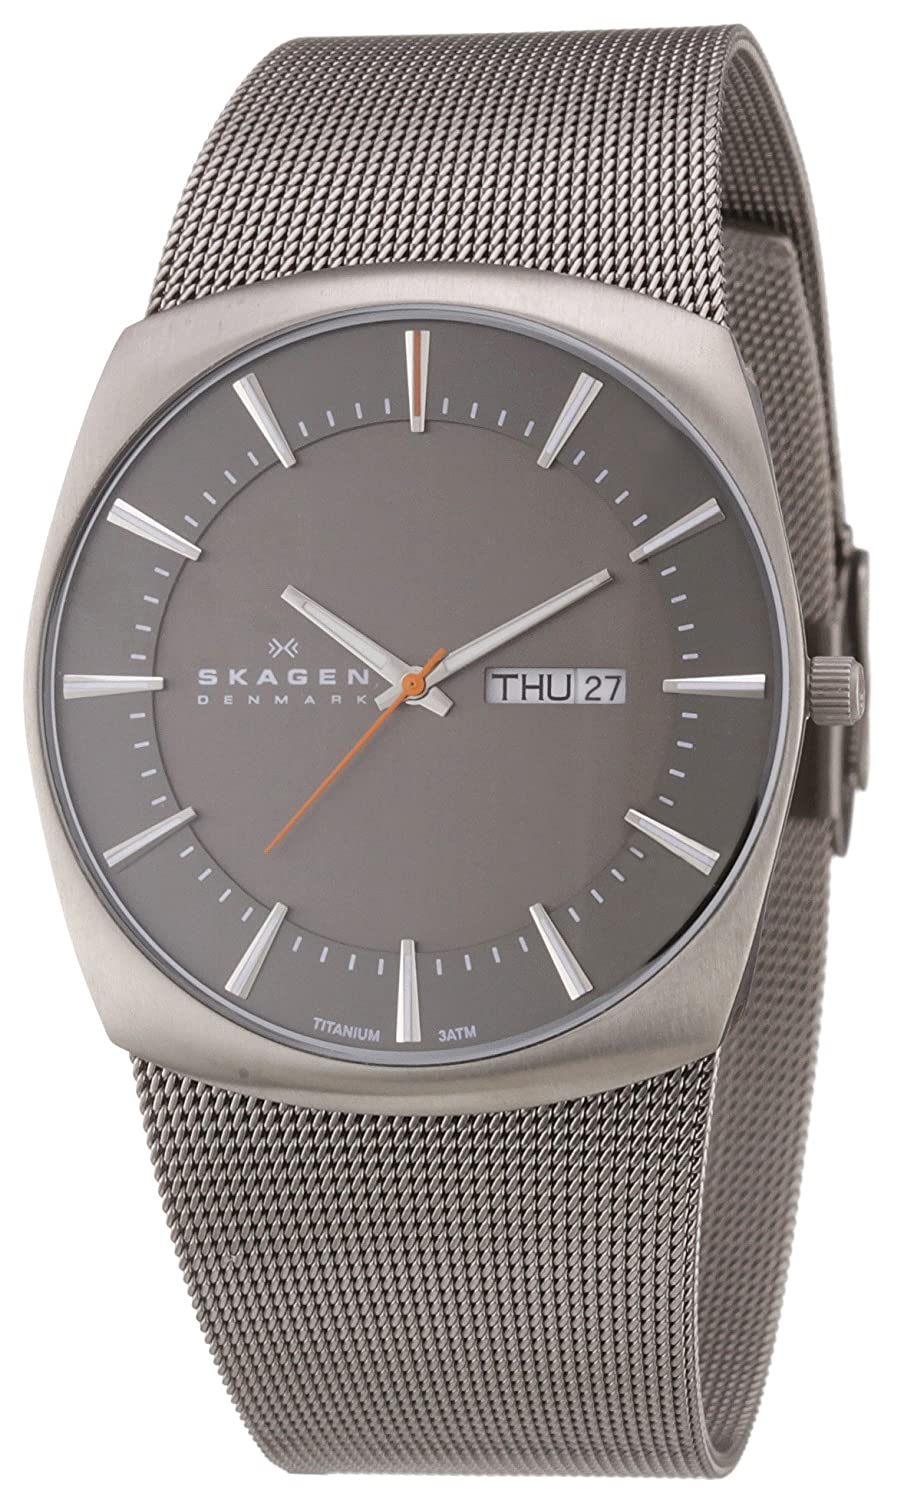 Amazon.com: Skagen Mens 696XLTTM Titanium Grey Dial Watch: Skagen: Watches